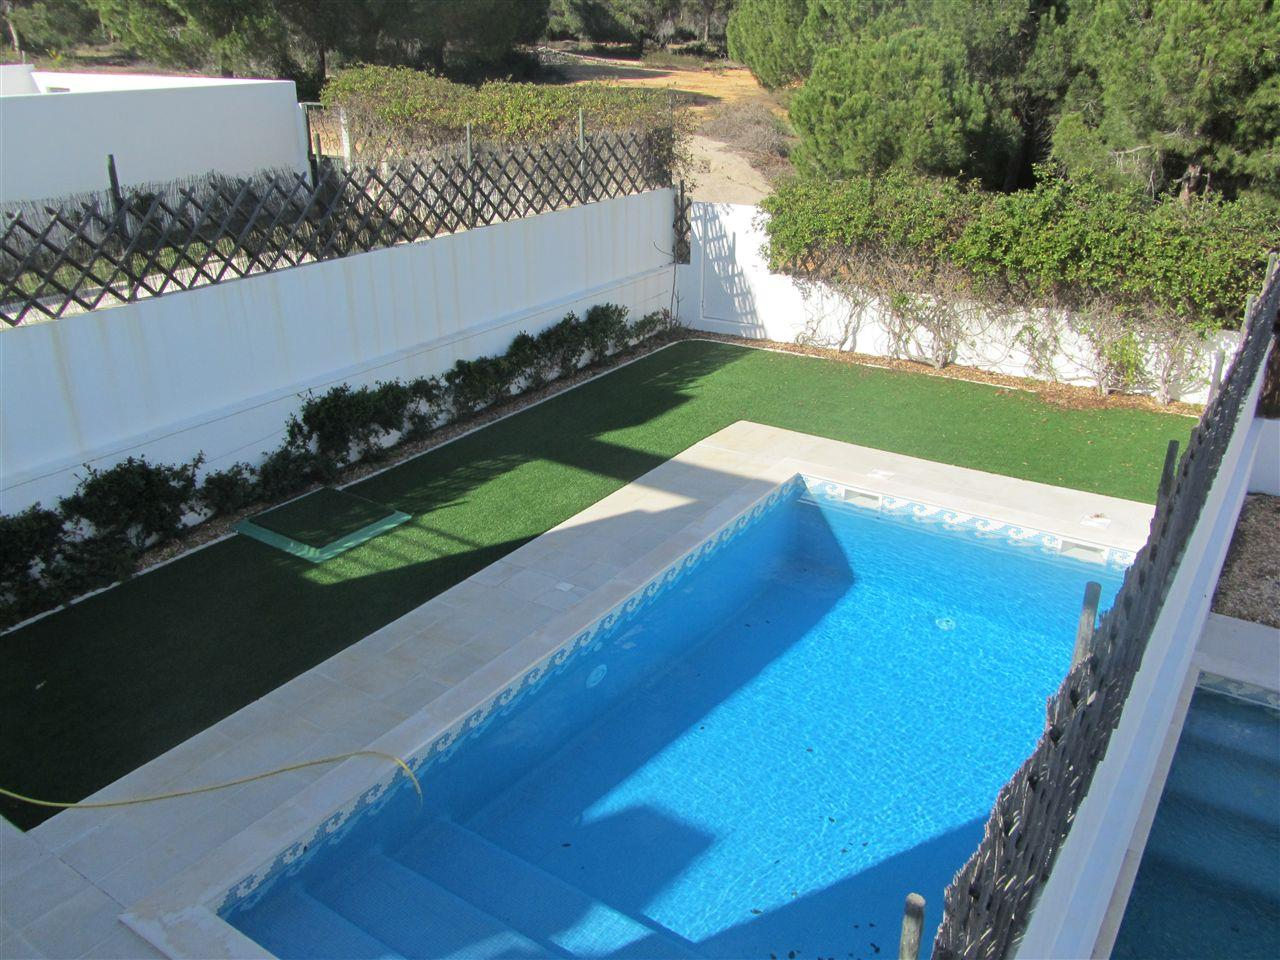 Single Family Home for Sale at Terraced house, 4 bedrooms, for Sale Loule, Algarve, 8135-105 Portugal